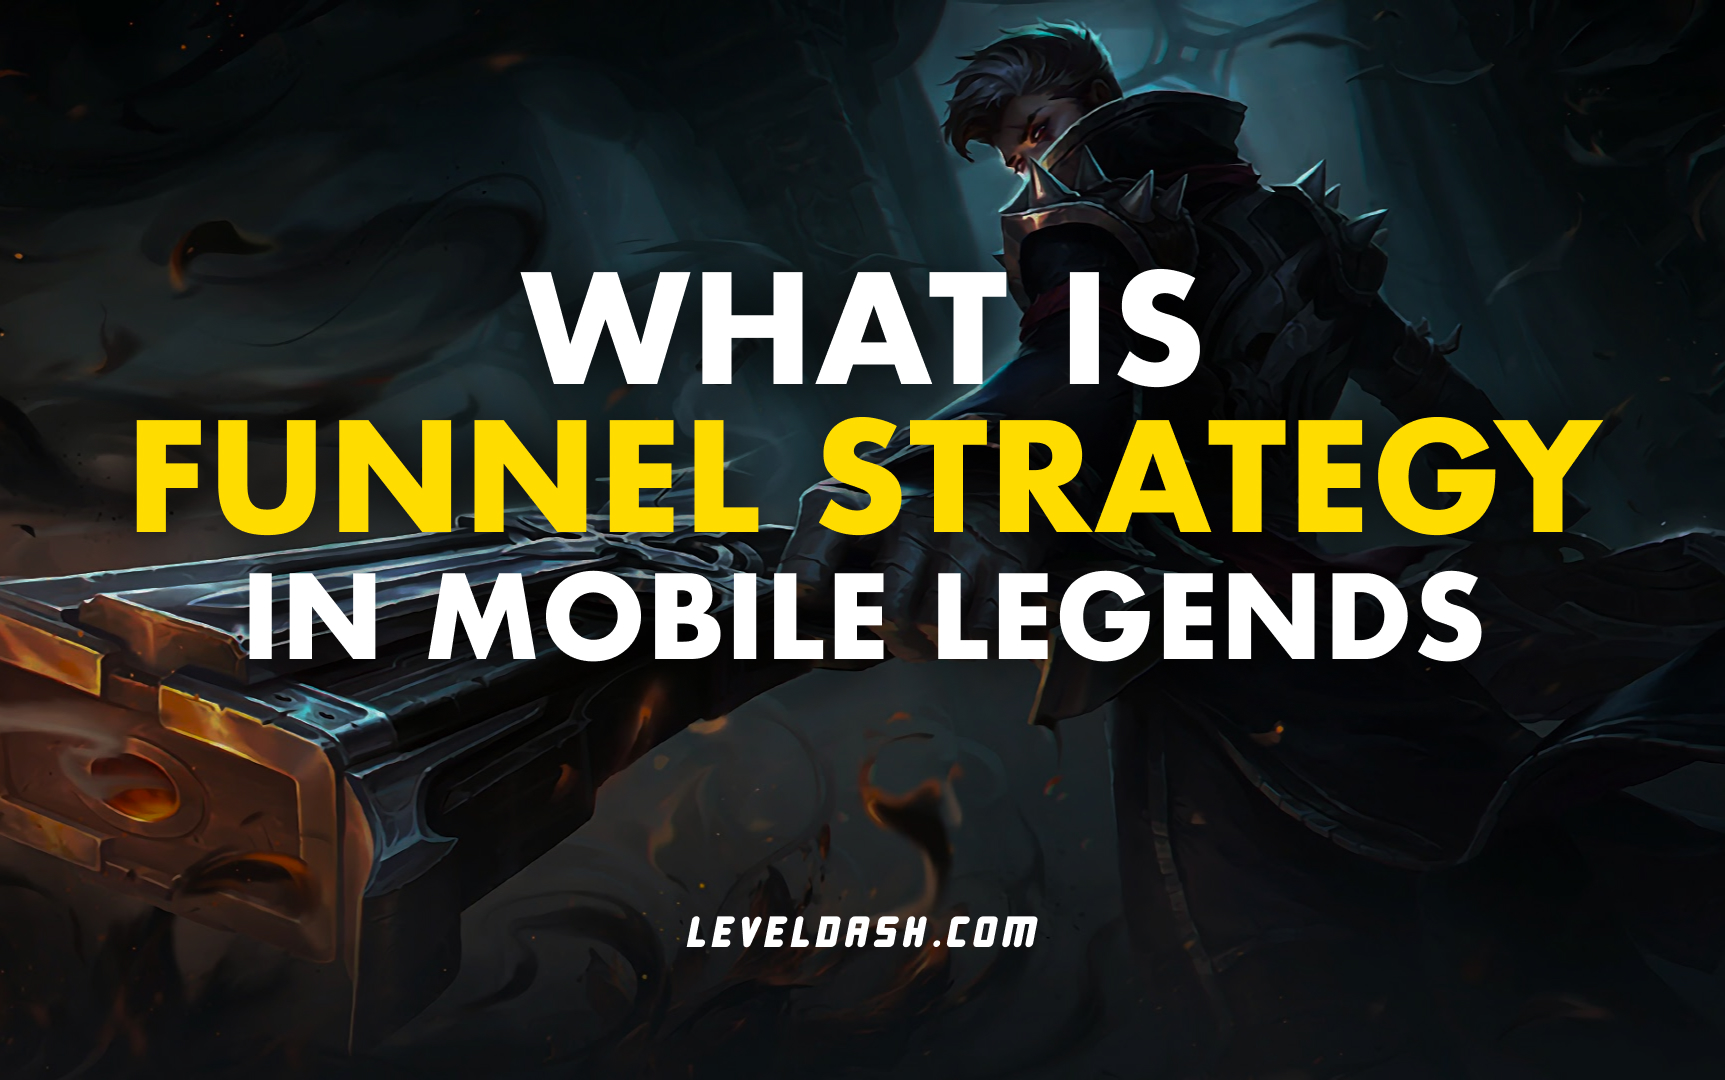 What is Funnel Strategy in Mobile Legends